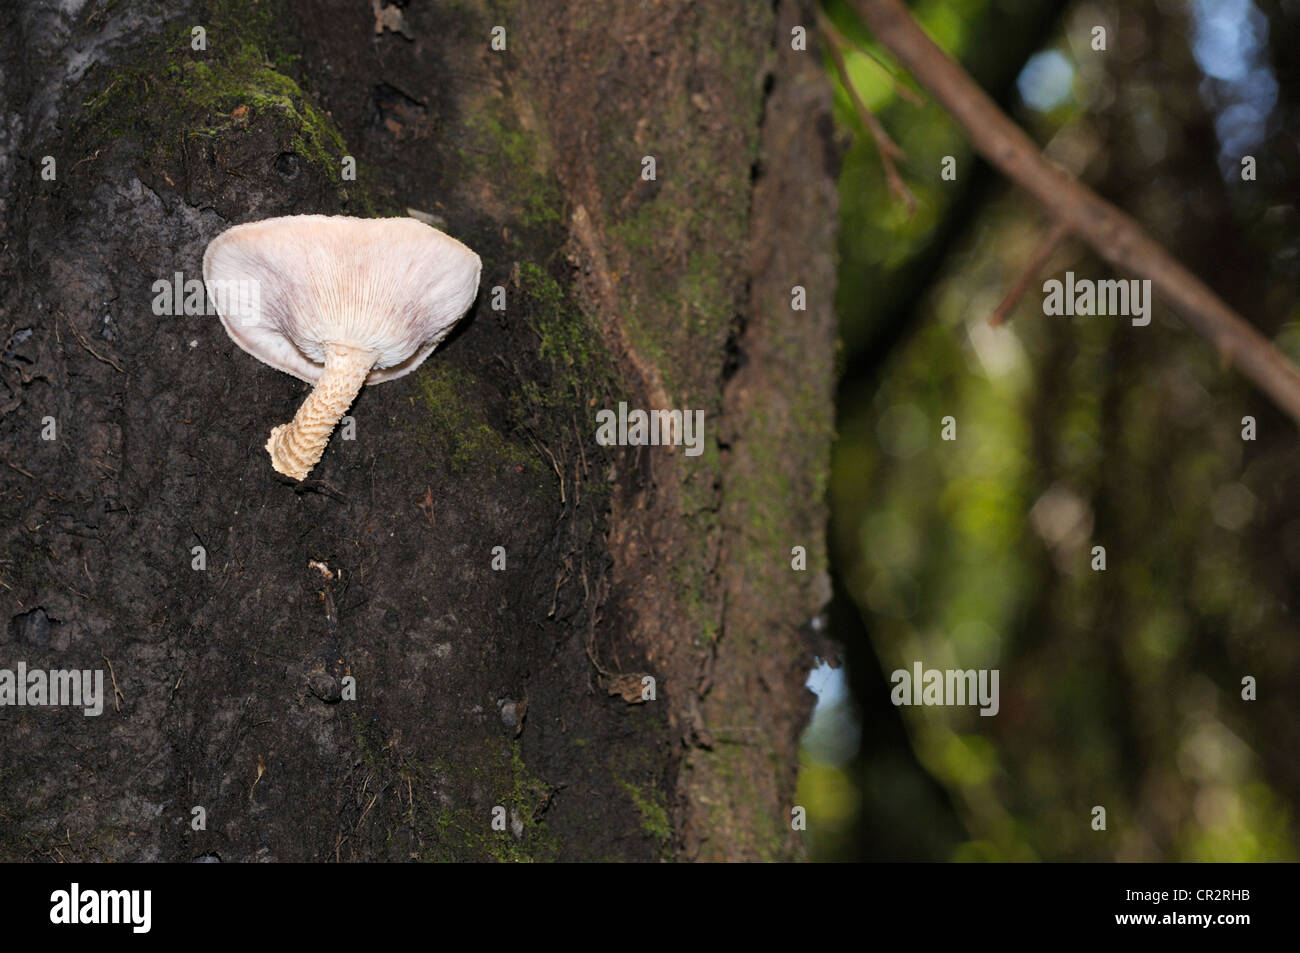 Parasitic fungus on side of living tree, Costa Rica - Stock Image